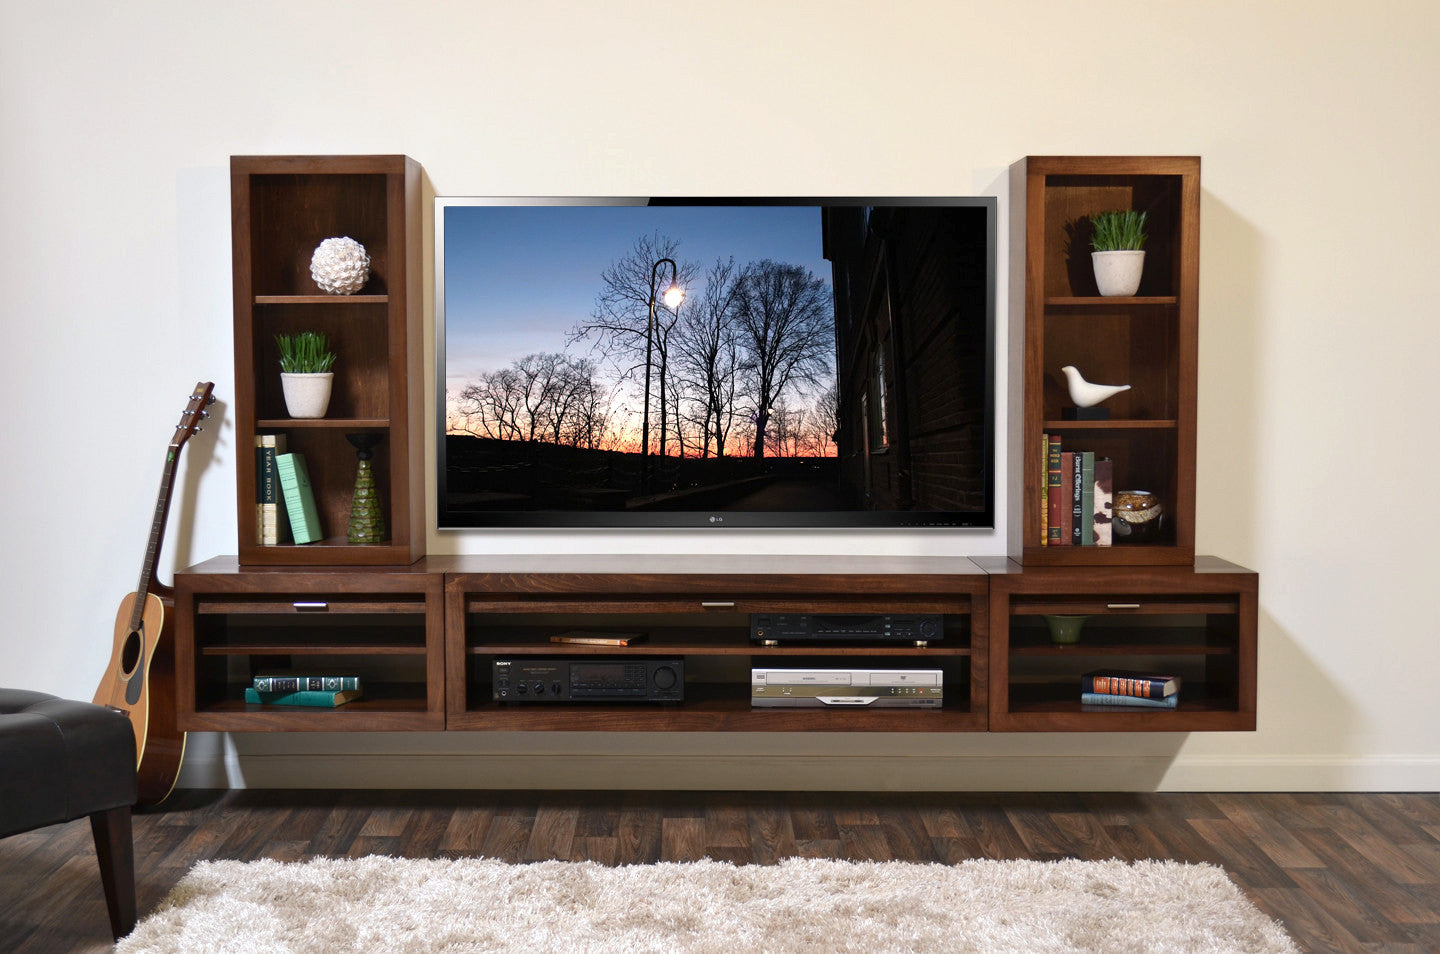 Merveilleux Floating Entertainment Center Wall Mount TV Stand   ECO GEO Mocha